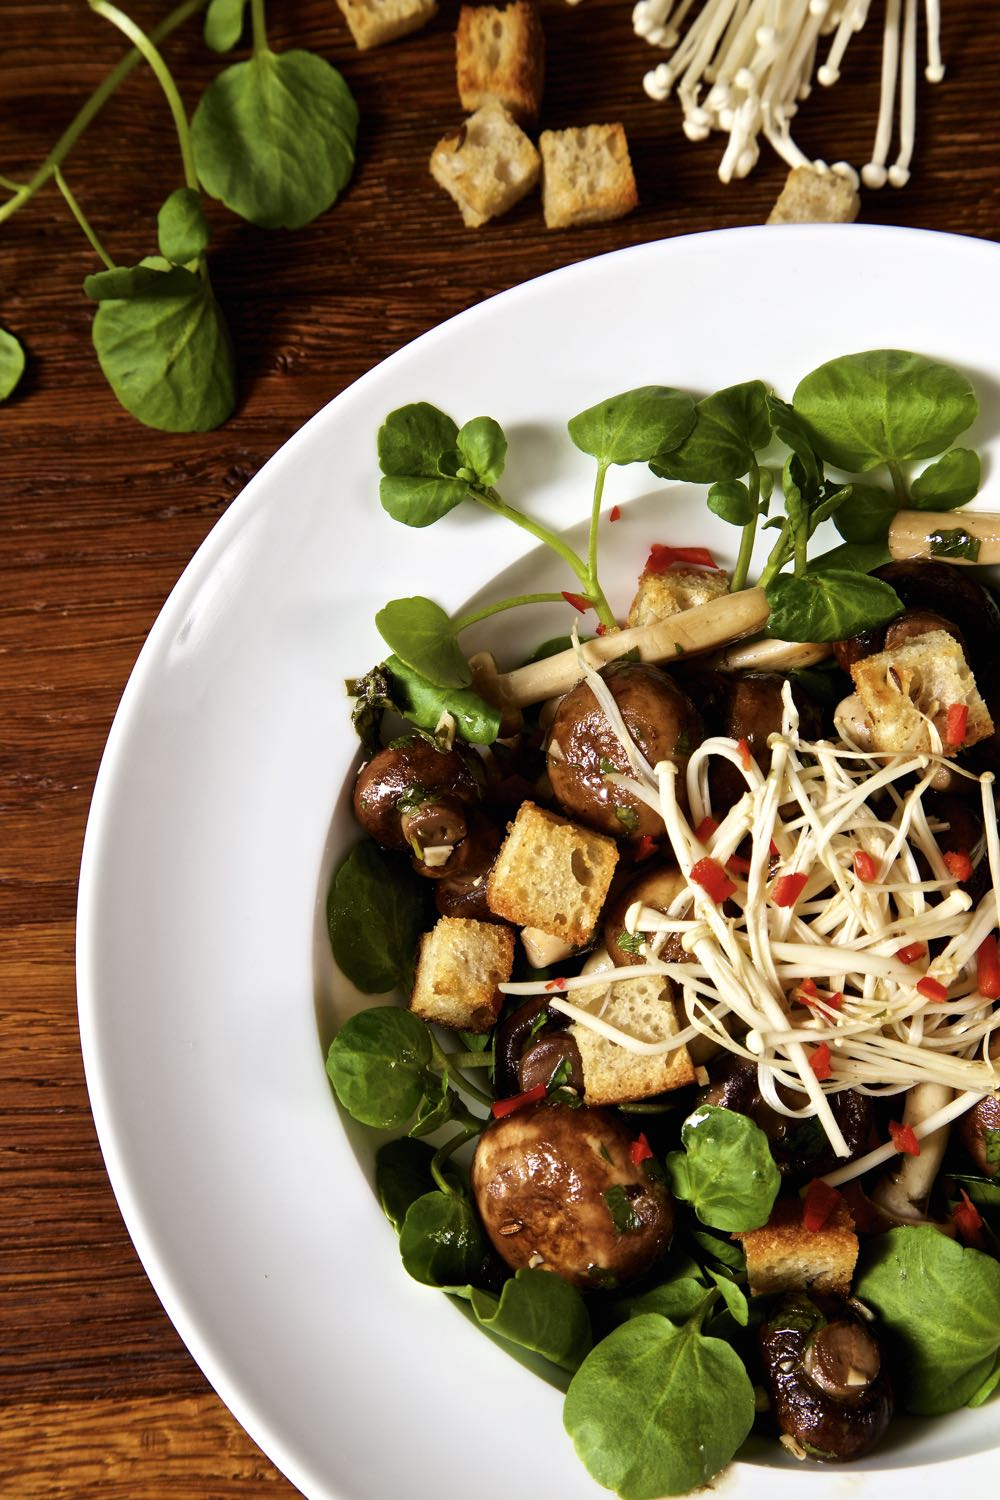 Marinated Mushrooms with cumin croutons and watercress in a white bowl.